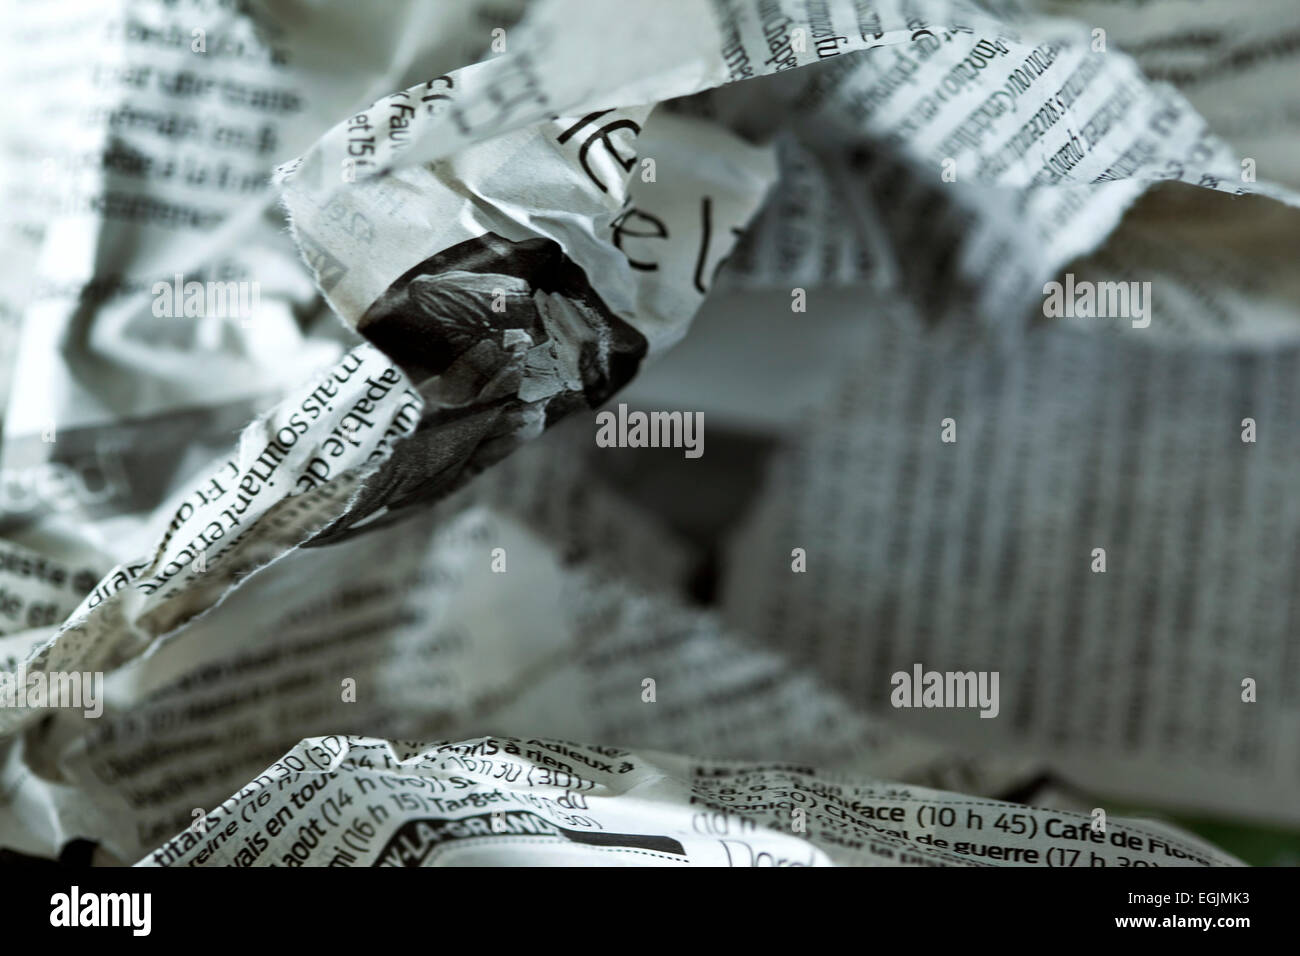 Focus on a French torn and crumpled newspaper - Stock Image